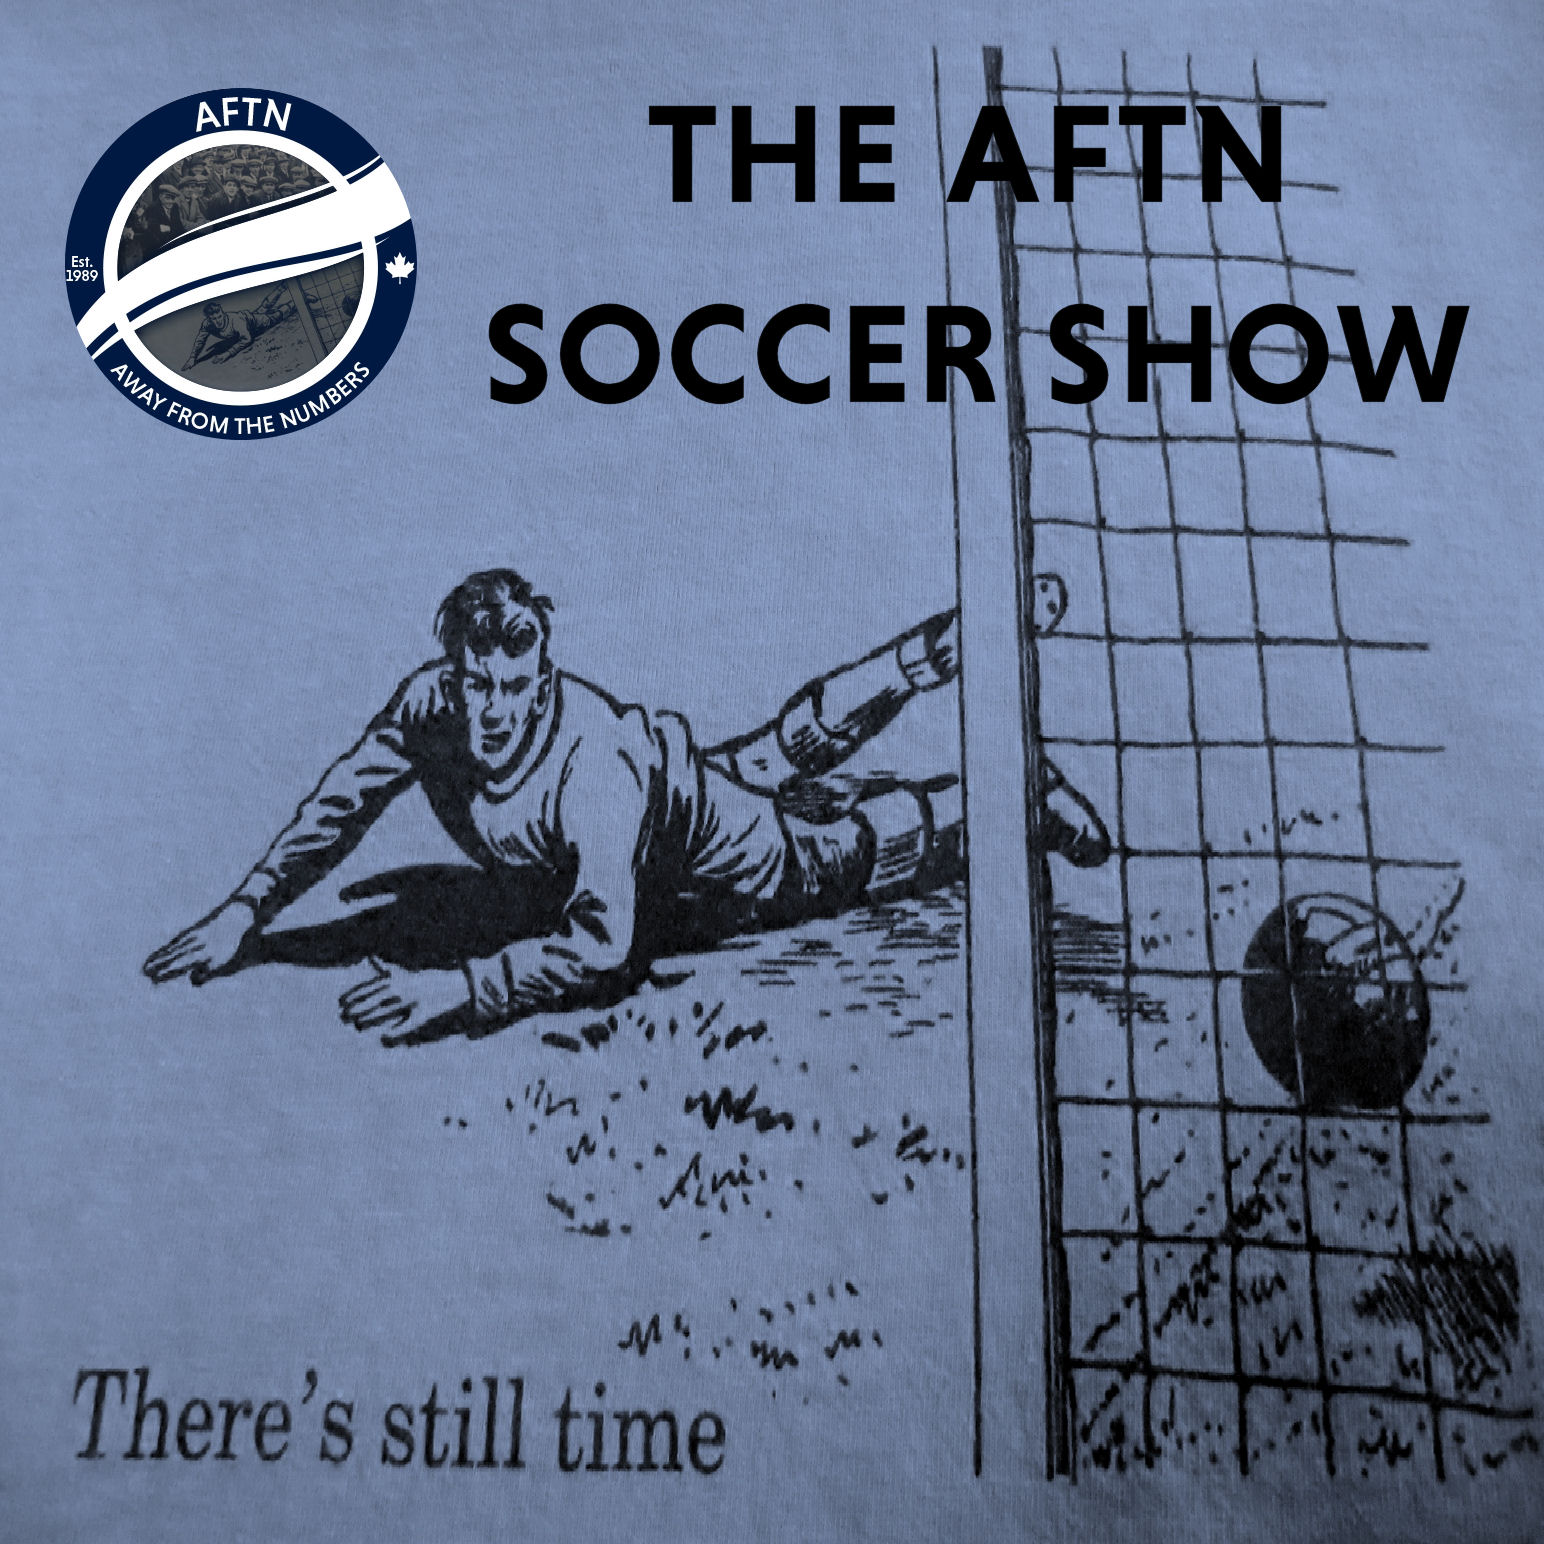 Episode 306 - The AFTN Soccer Show (Auf Wiedersehen, Pet with guests Alphonso Davies, Jordon Mutch, and Simon Colyn)